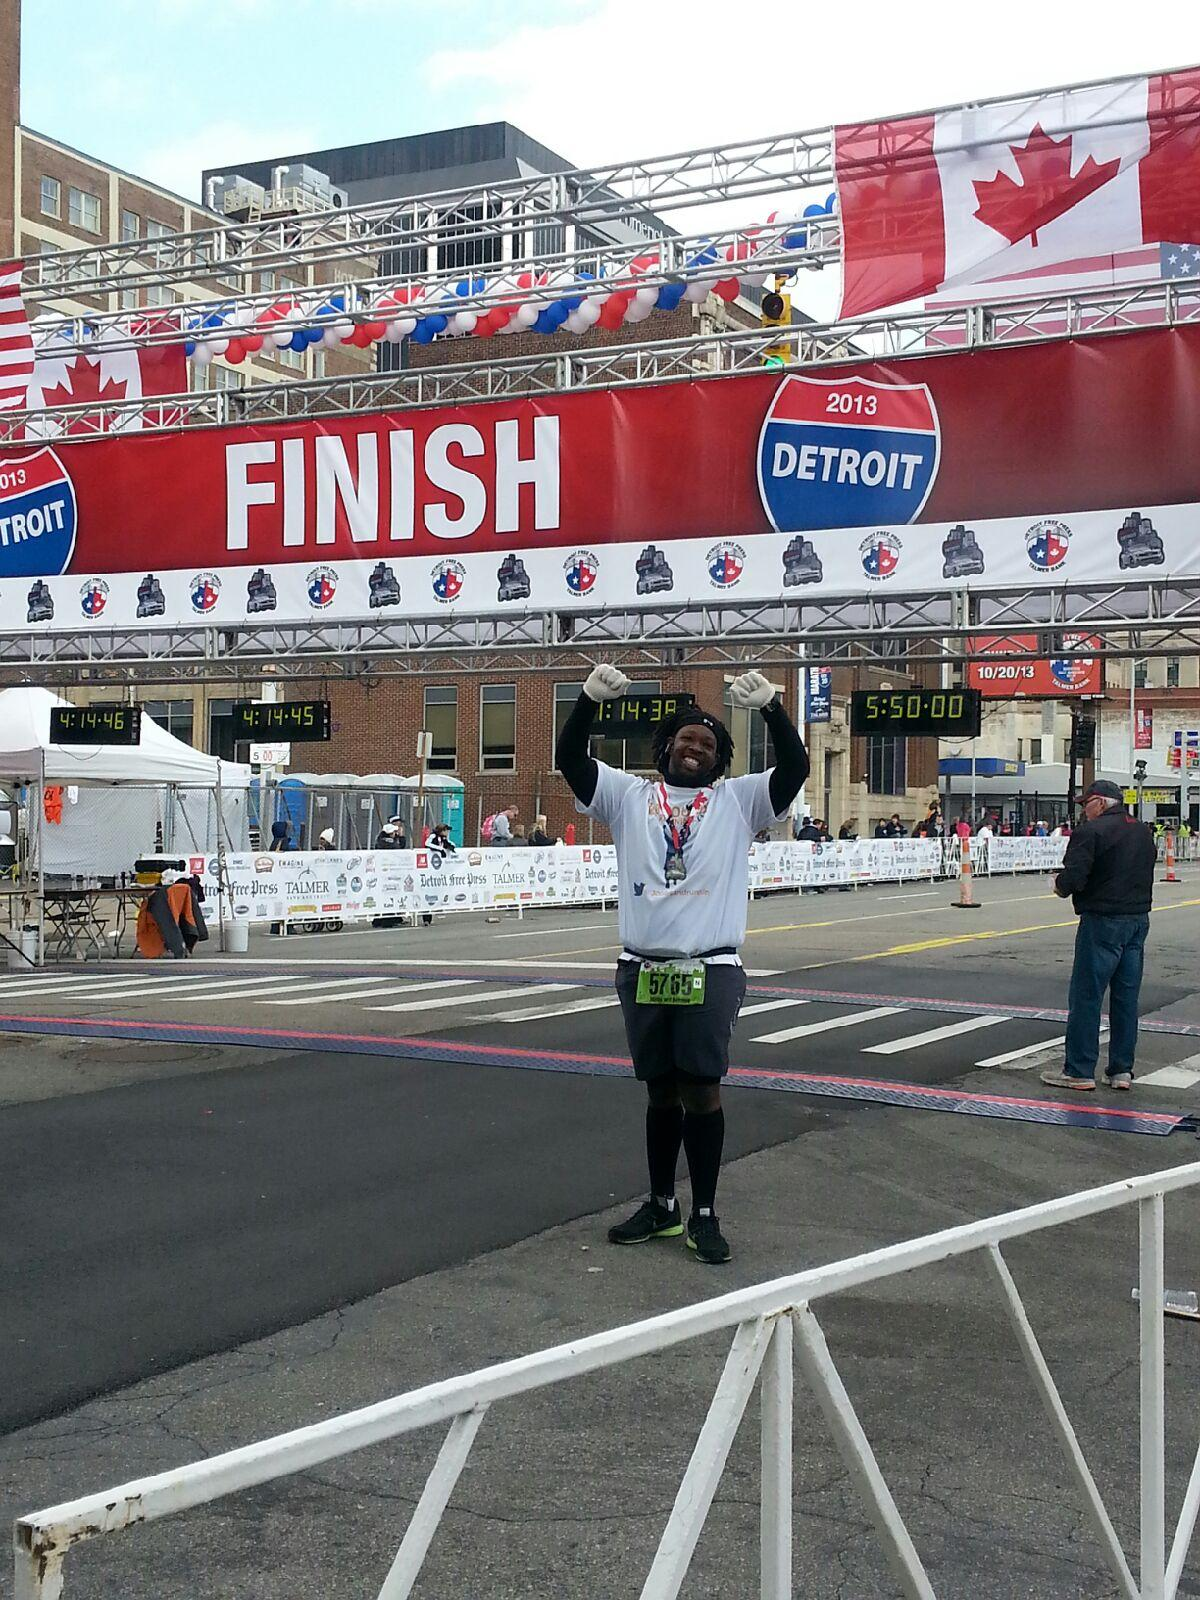 I Am A Detroit Free Press Marathon Finisher!